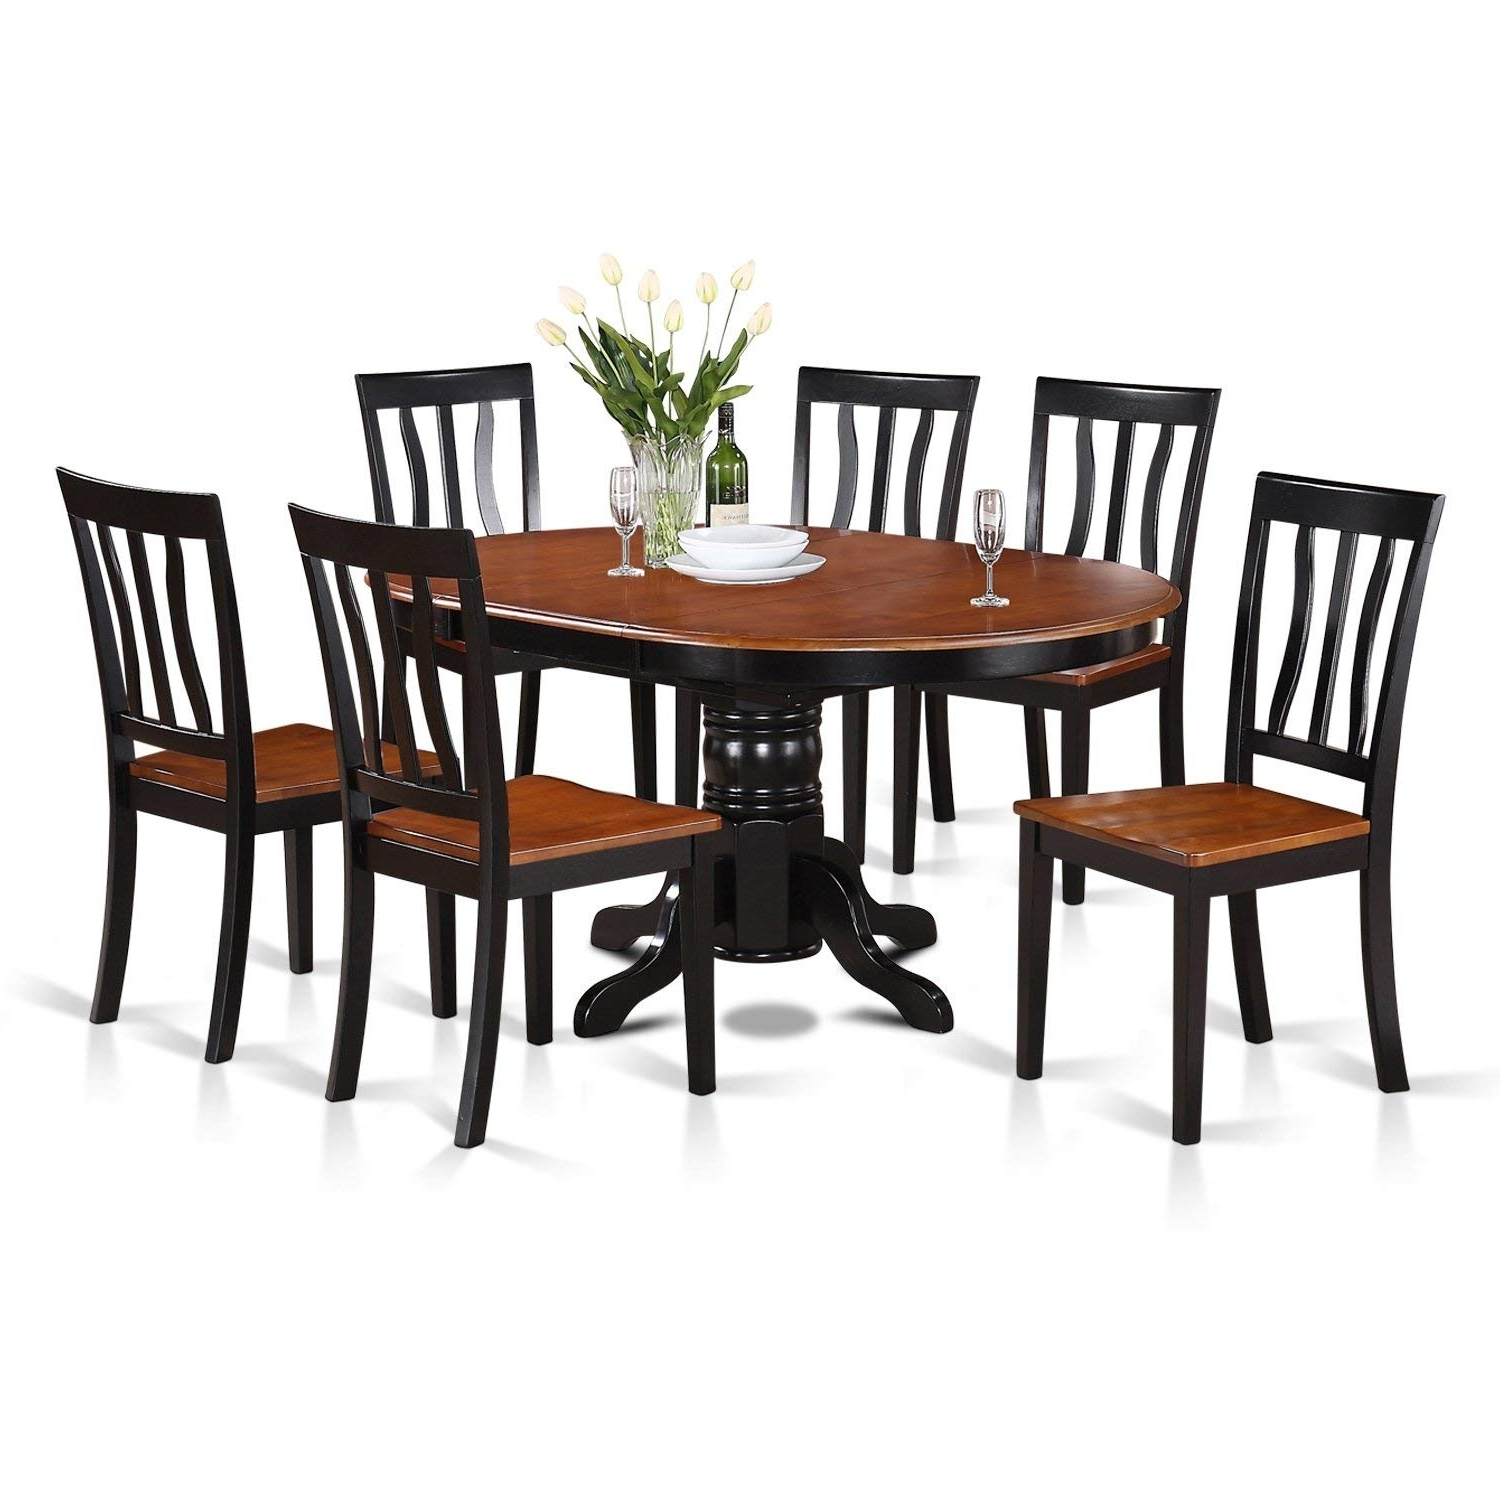 Fashionable Jaxon 5 Piece Extension Round Dining Sets With Wood Chairs With Amazon: East West Furniture Avat7 Blk W 7 Piece Dining Table Set (View 4 of 25)